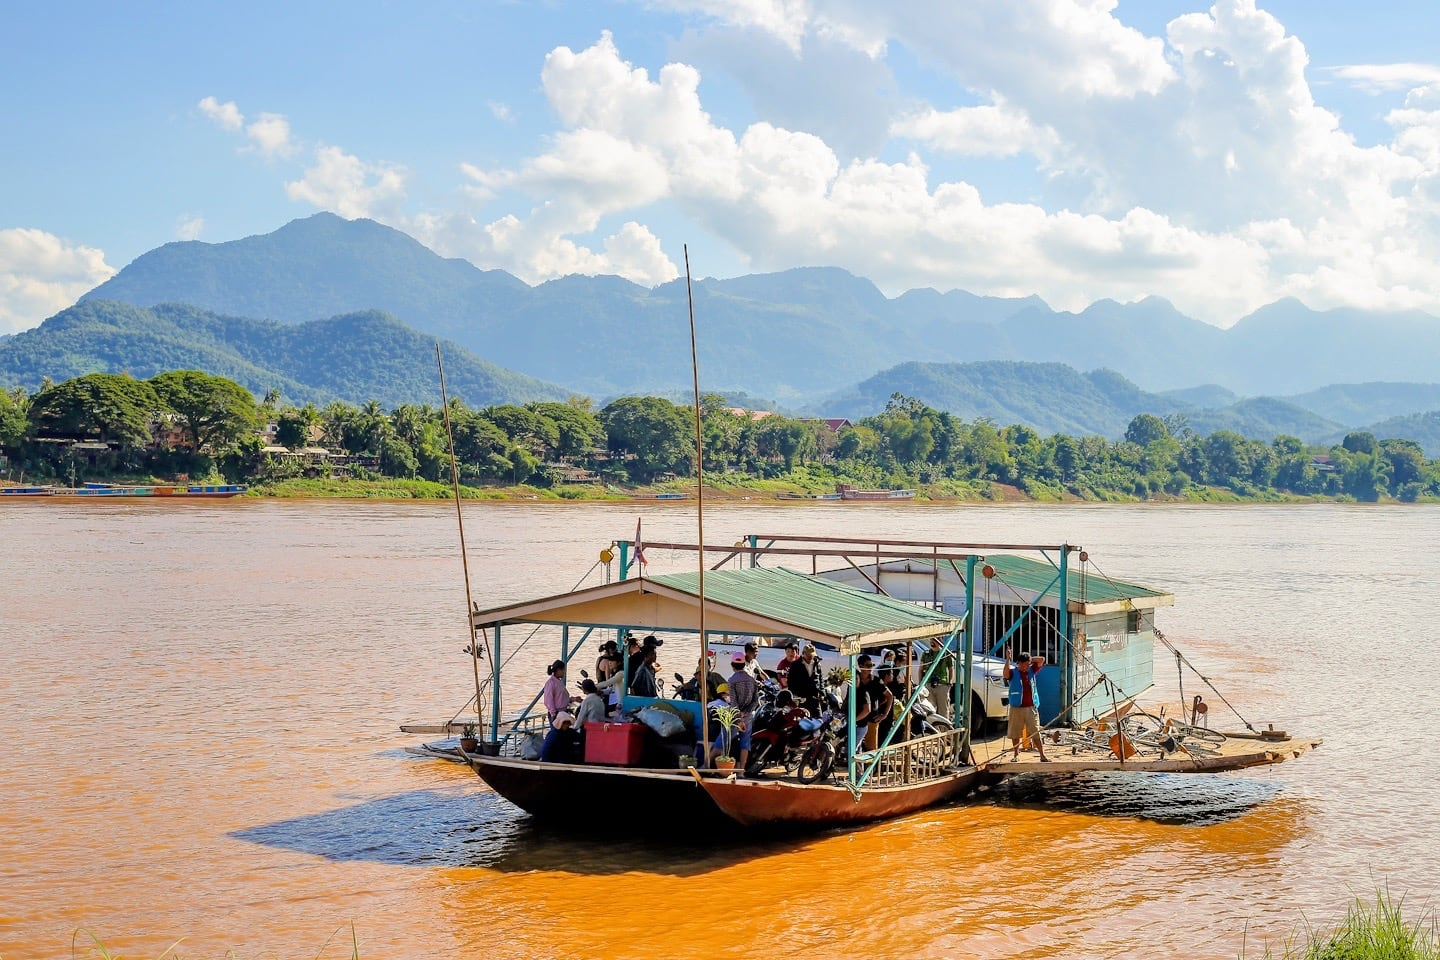 Mekong ferry things to do in Luang Prabang